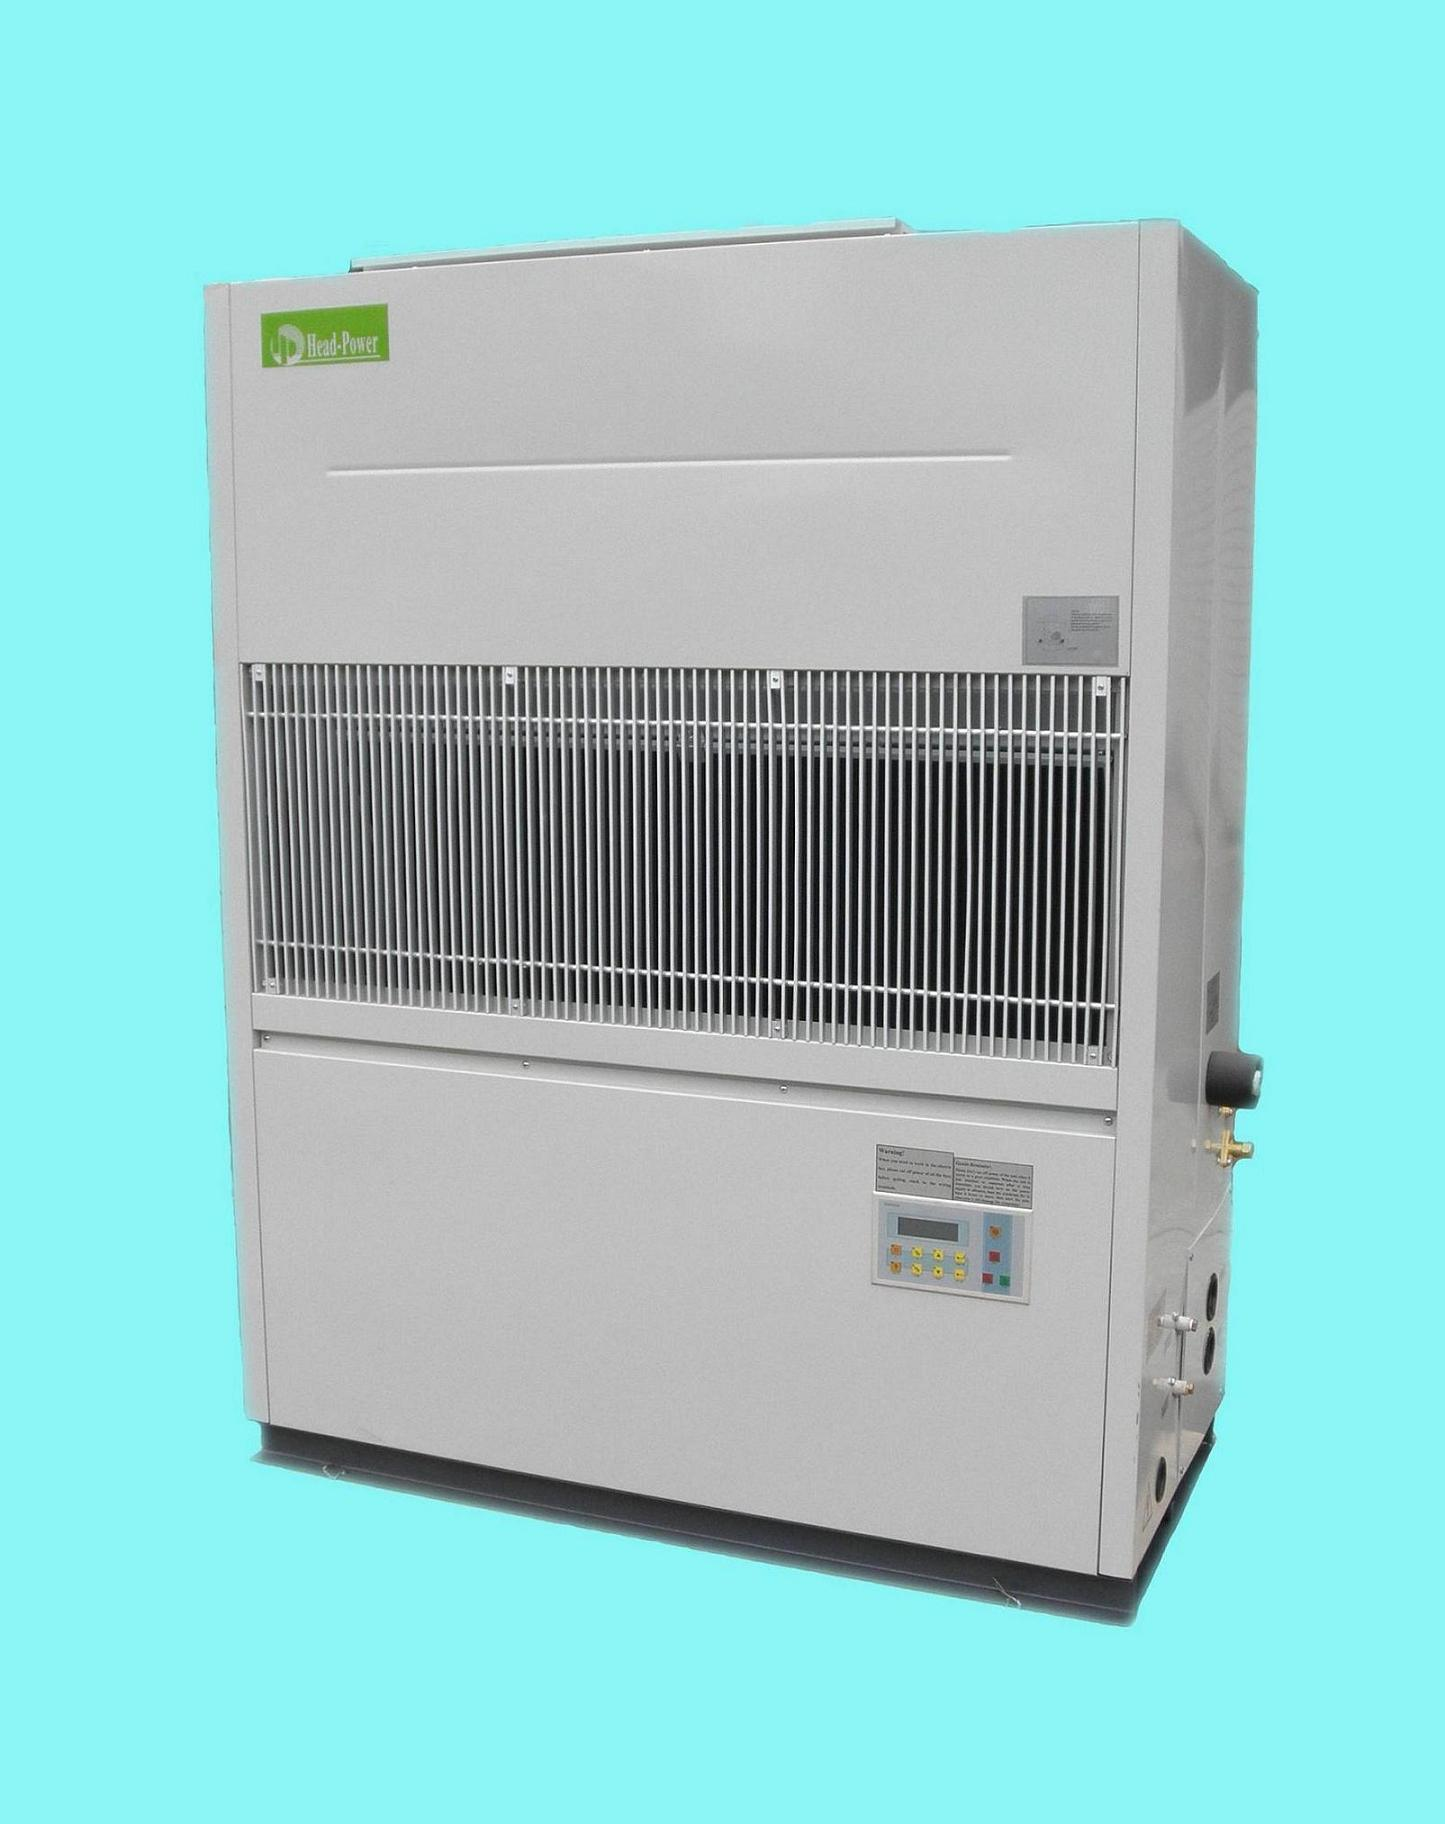 (HWL) China Water Cooled Air Conditioner Packaged Air Conditioner #10BBBB